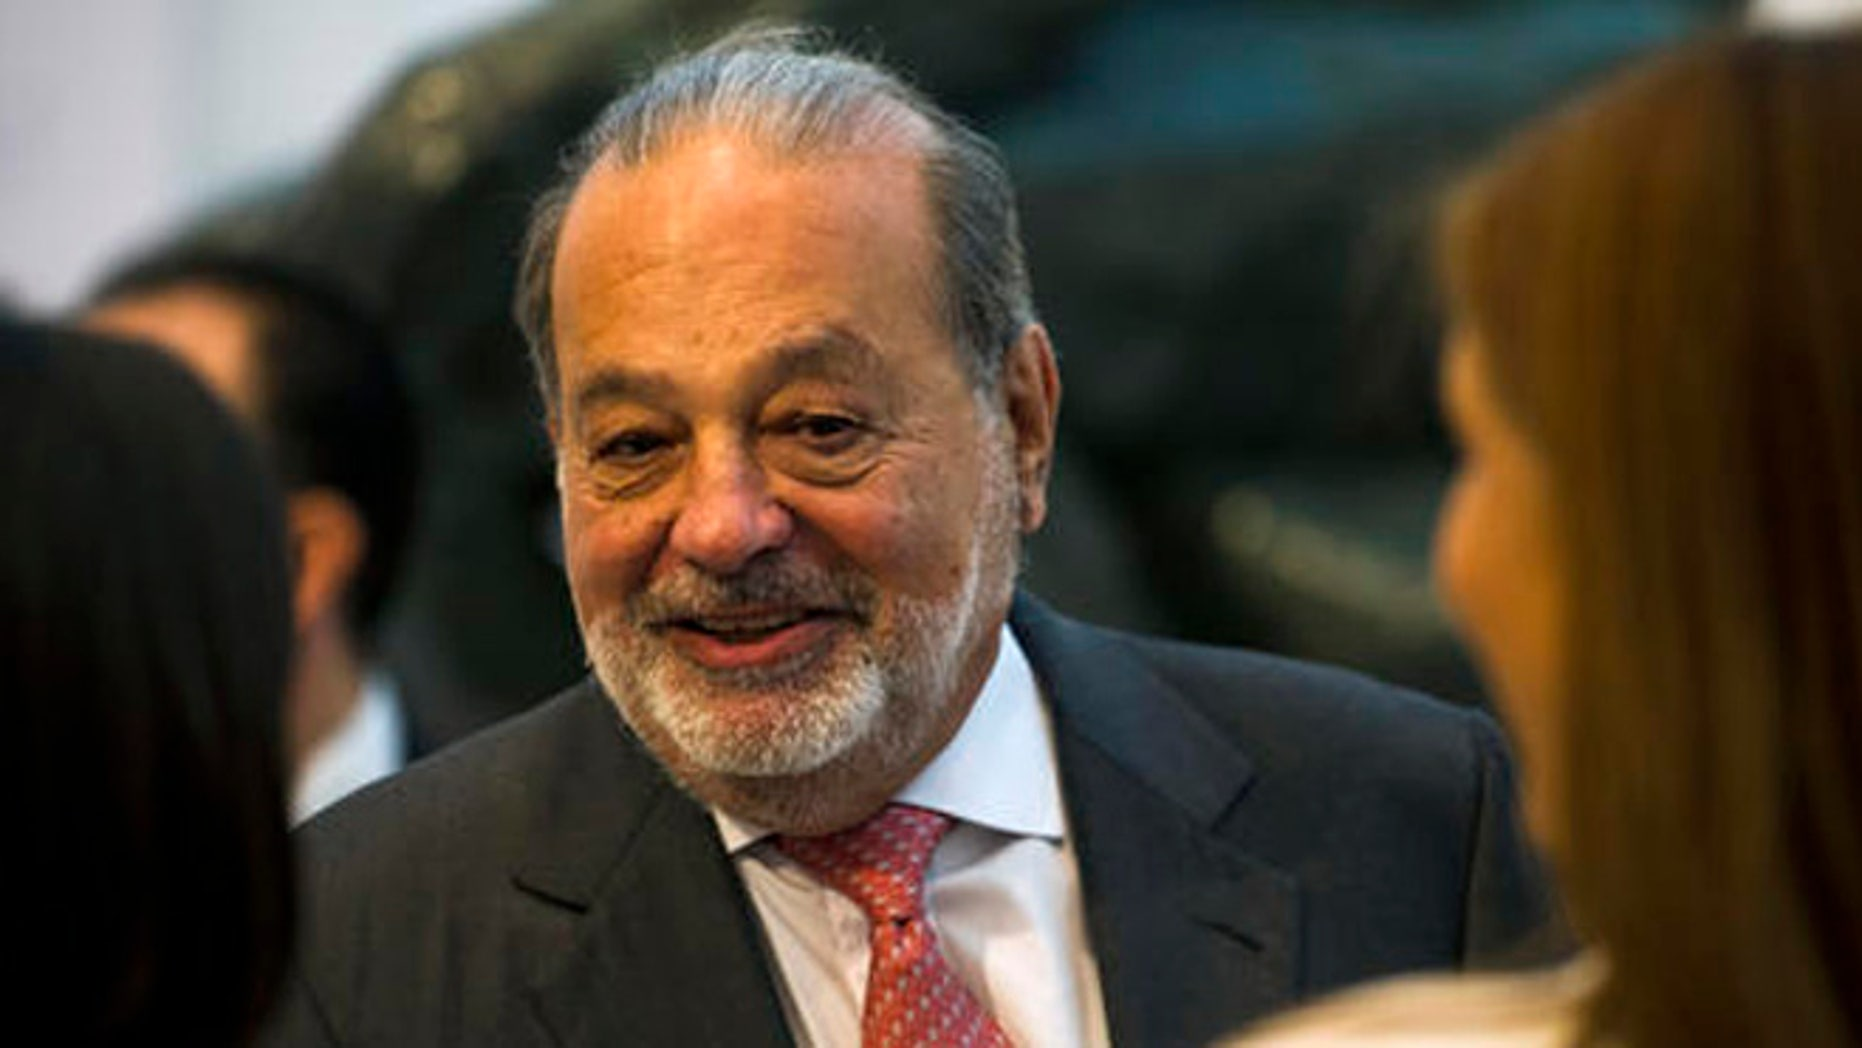 Carlos Slim at the Museo Soumaya in Mexico City, Wednesday, June 15, 2016.